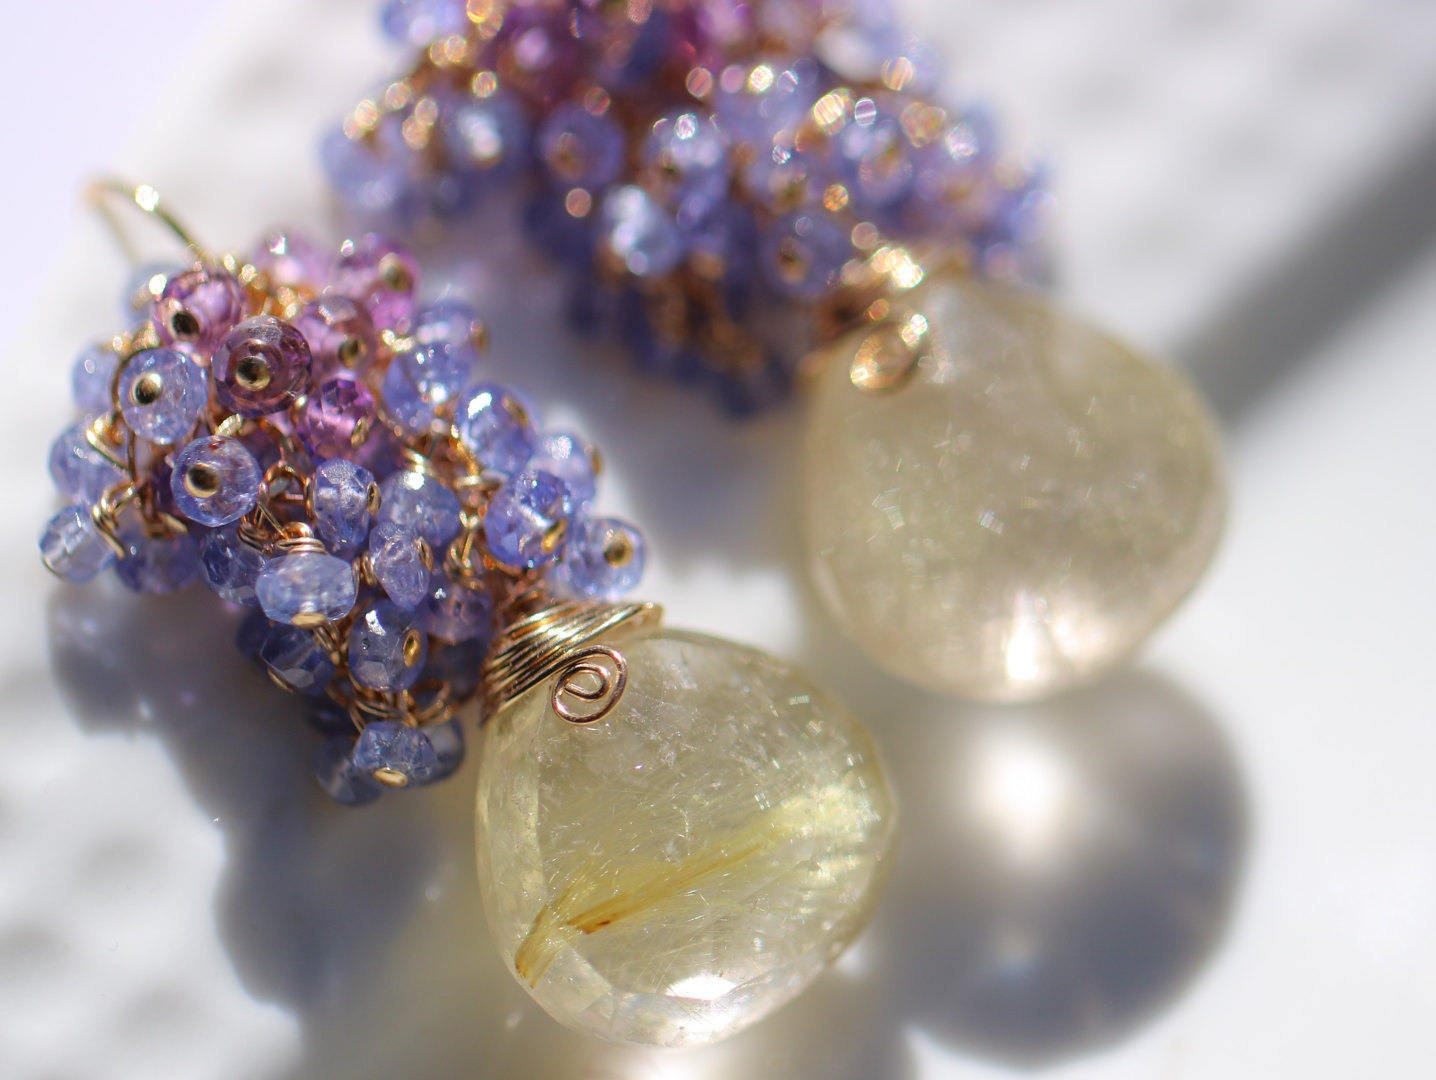 Golden Rutilated Quartz Jewelry Of Tazanite And Amethyst Cluster Earrings With Golden